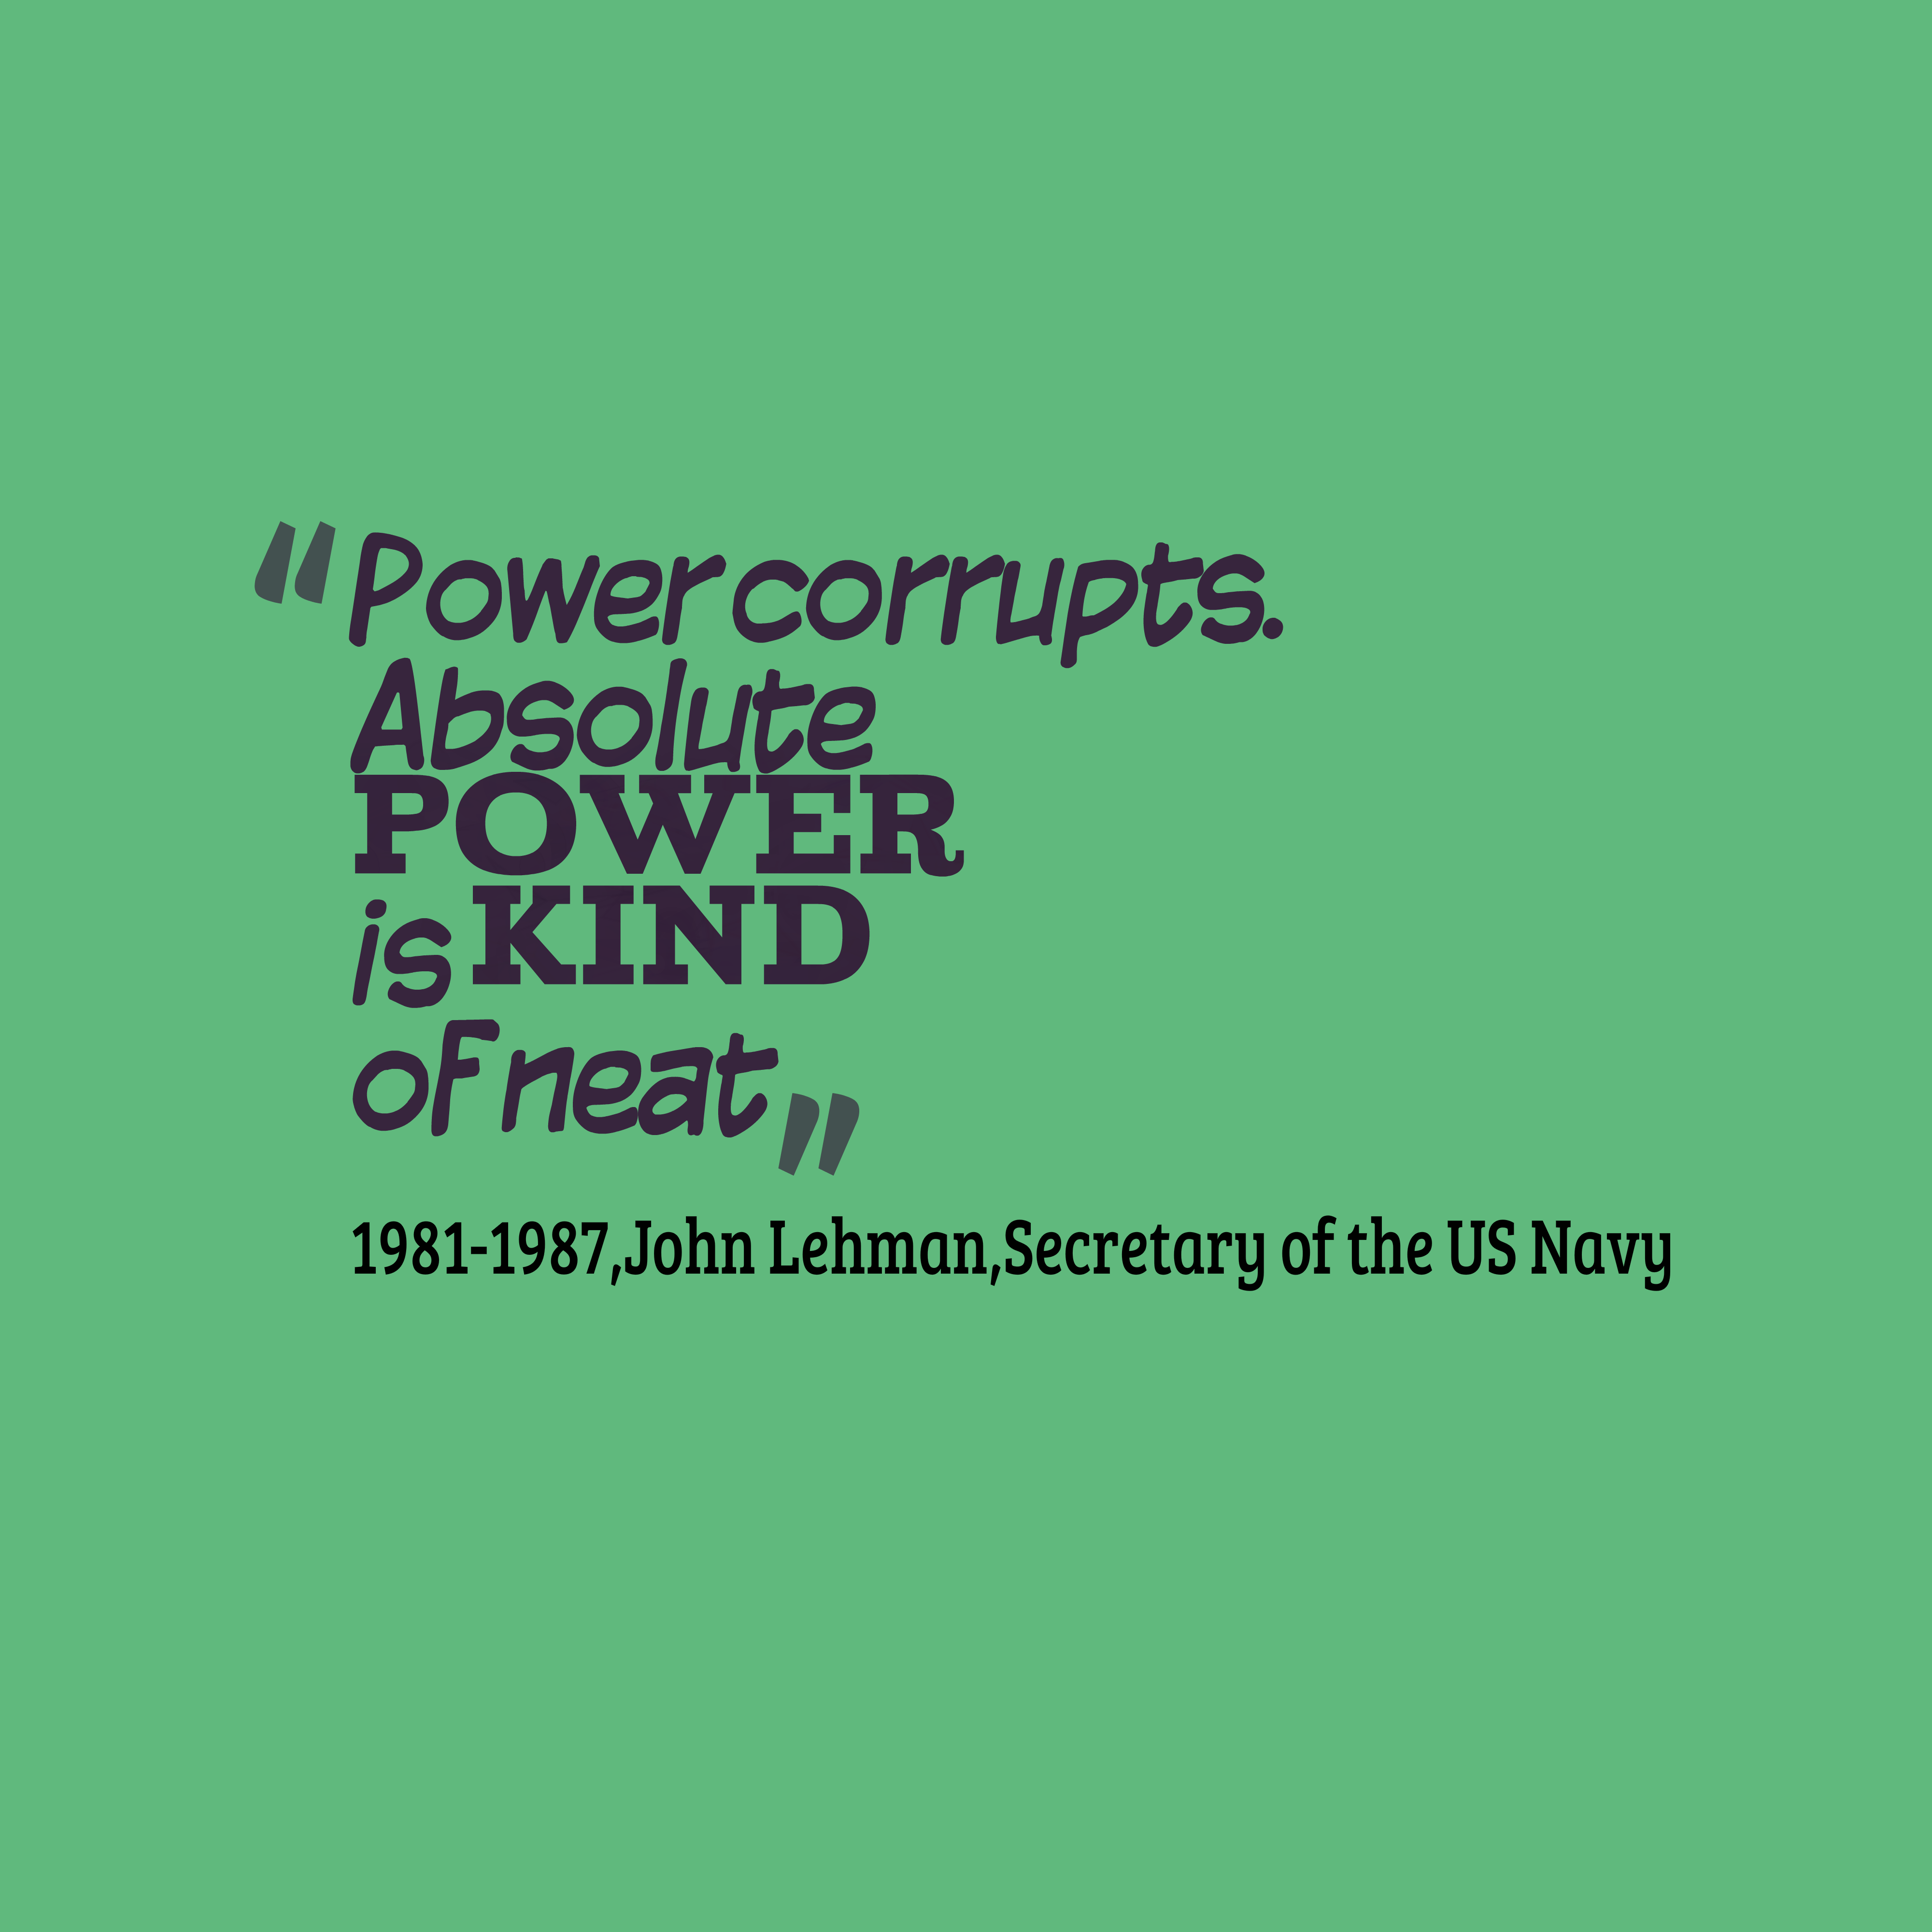 power corrupts and absolute power corrupts absolutely animal farm essay Absolute power corrupts those who possess it this can be seen throughout history, such as during world war ii, and proven by the actions of napoleon in the allegory animal farm by george orwell.